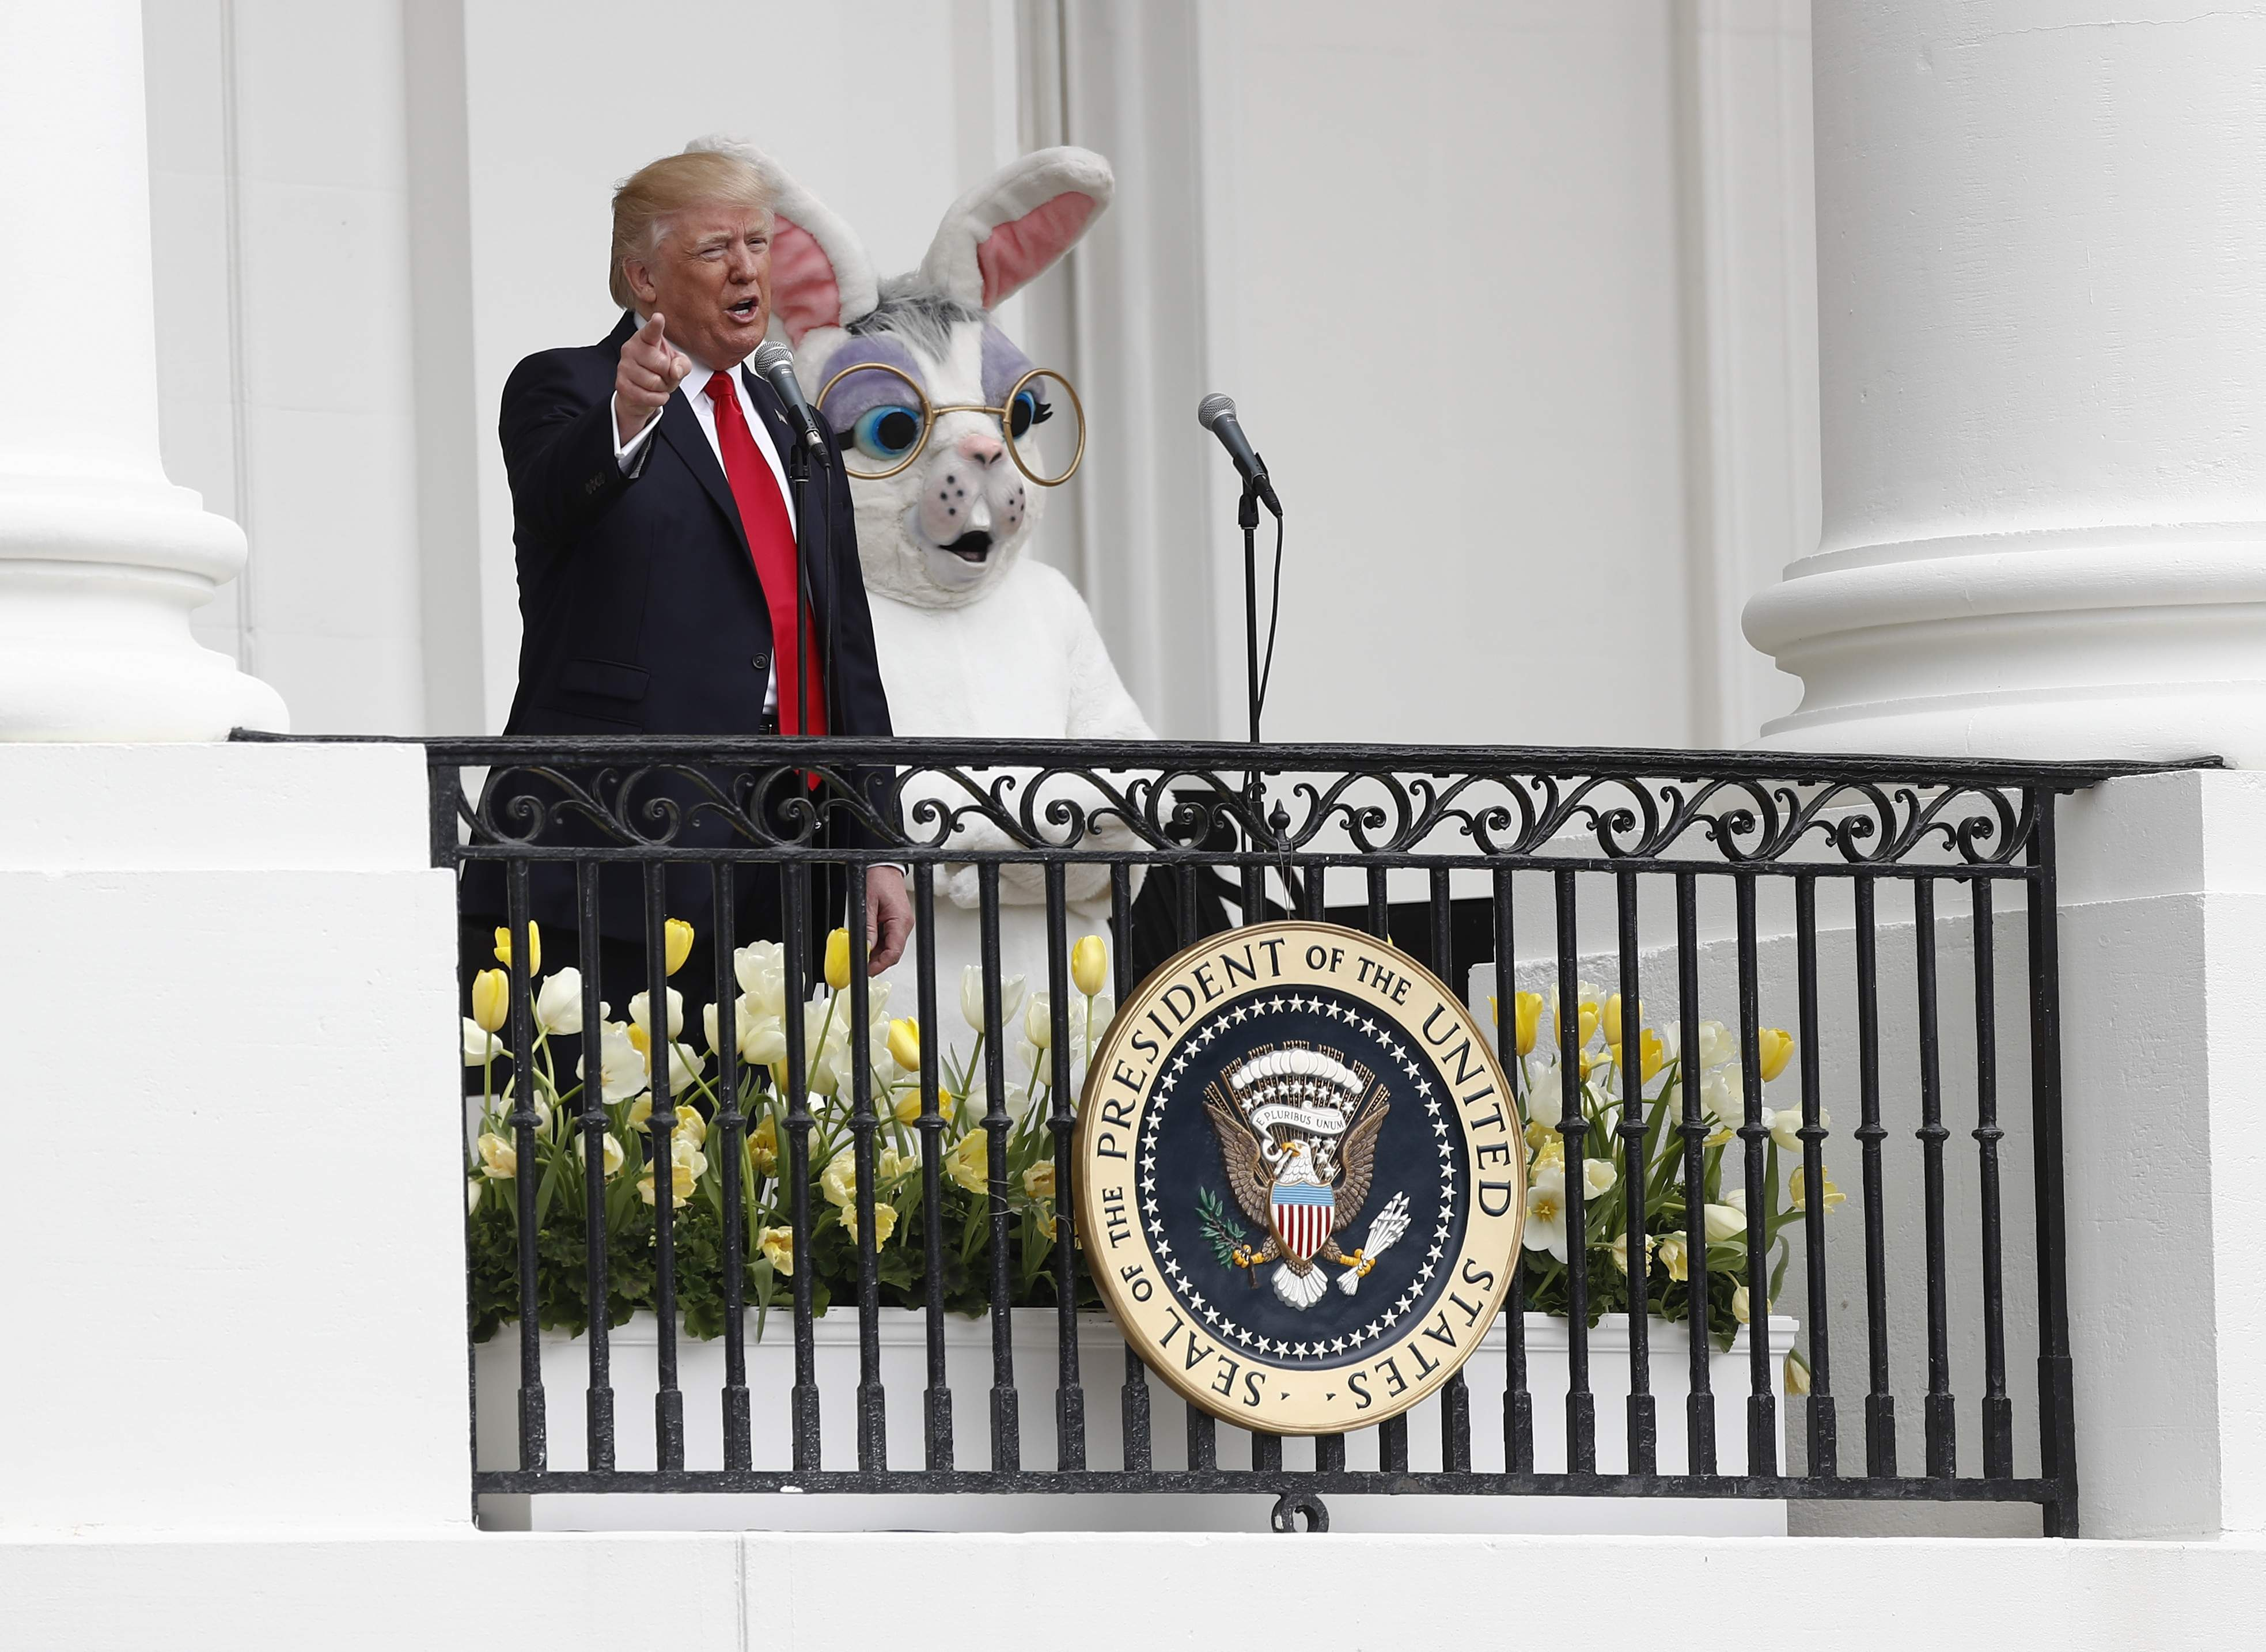 DAY 88 - In this April 17, 2017, file photo, President Donald Trump, joined by the Easter Bunny, speaks from the Truman Balcony during the annual White House Easter Egg Roll on the South Lawn of the White House in Washington. (AP Photo/Carolyn Kaster, File)